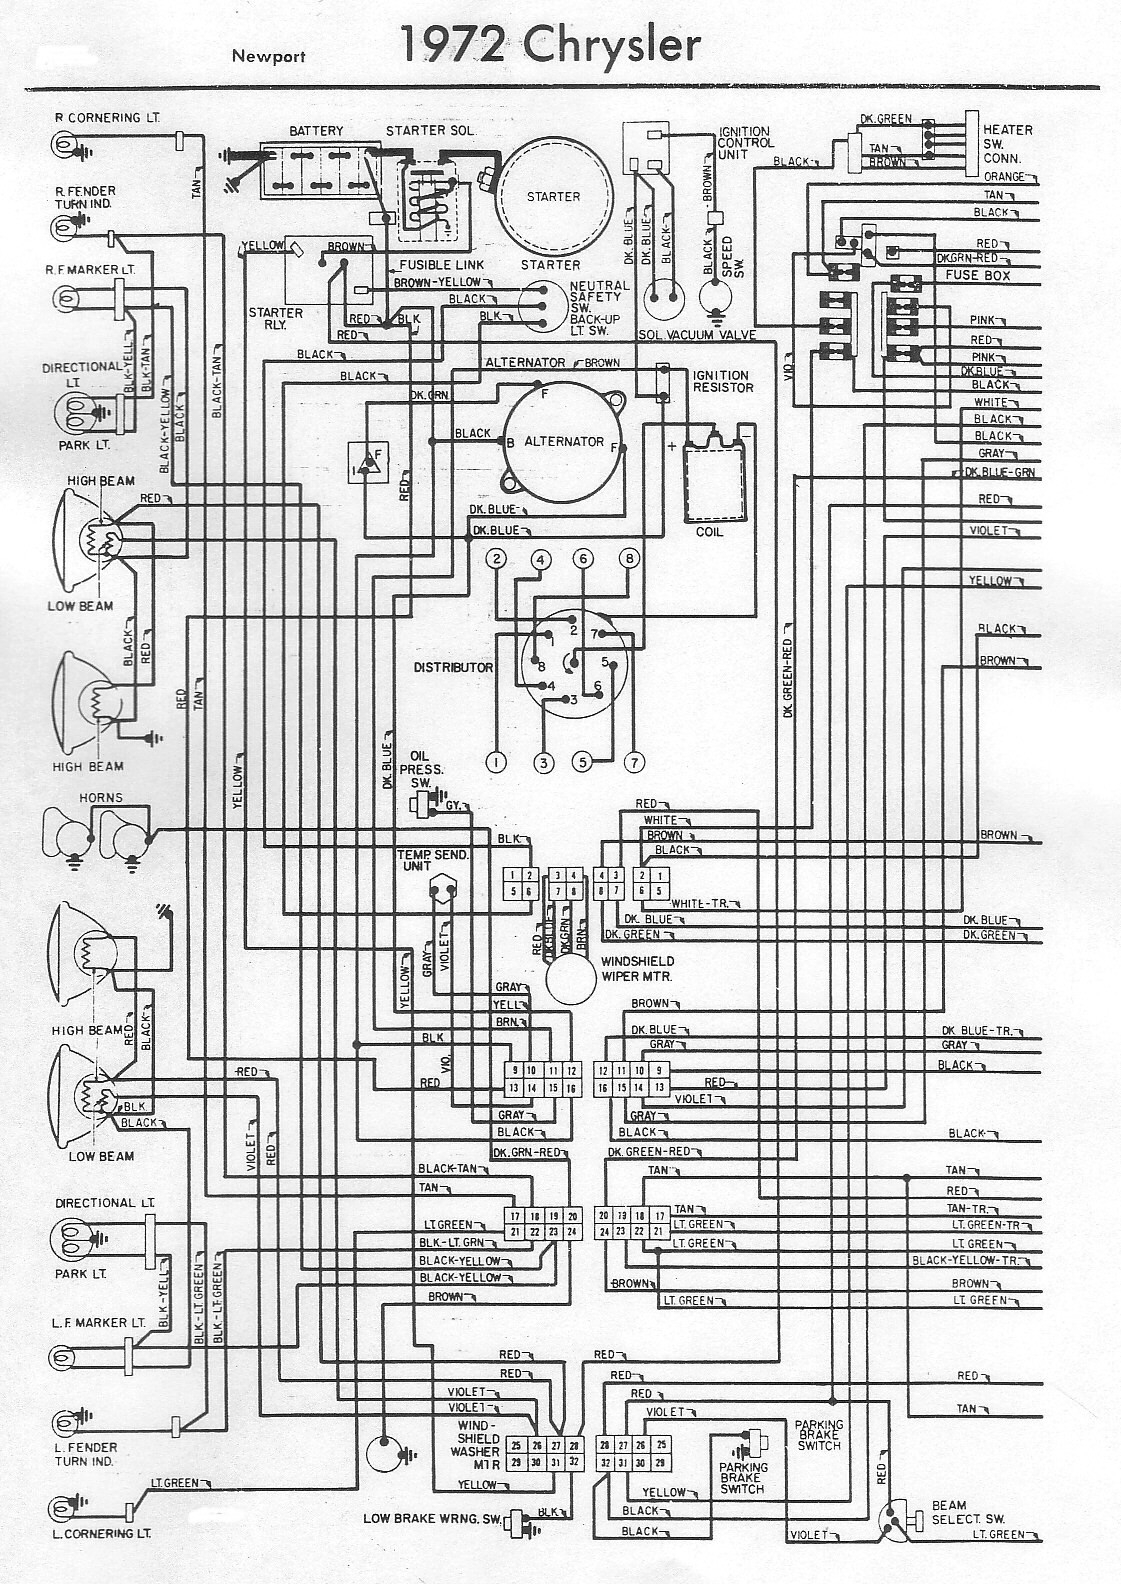 1966 chrysler 300 wiring diagram wiring diagram1966 chrysler ignition wiring diagram wiring library1966 chrysler 300 wiring diagram 2